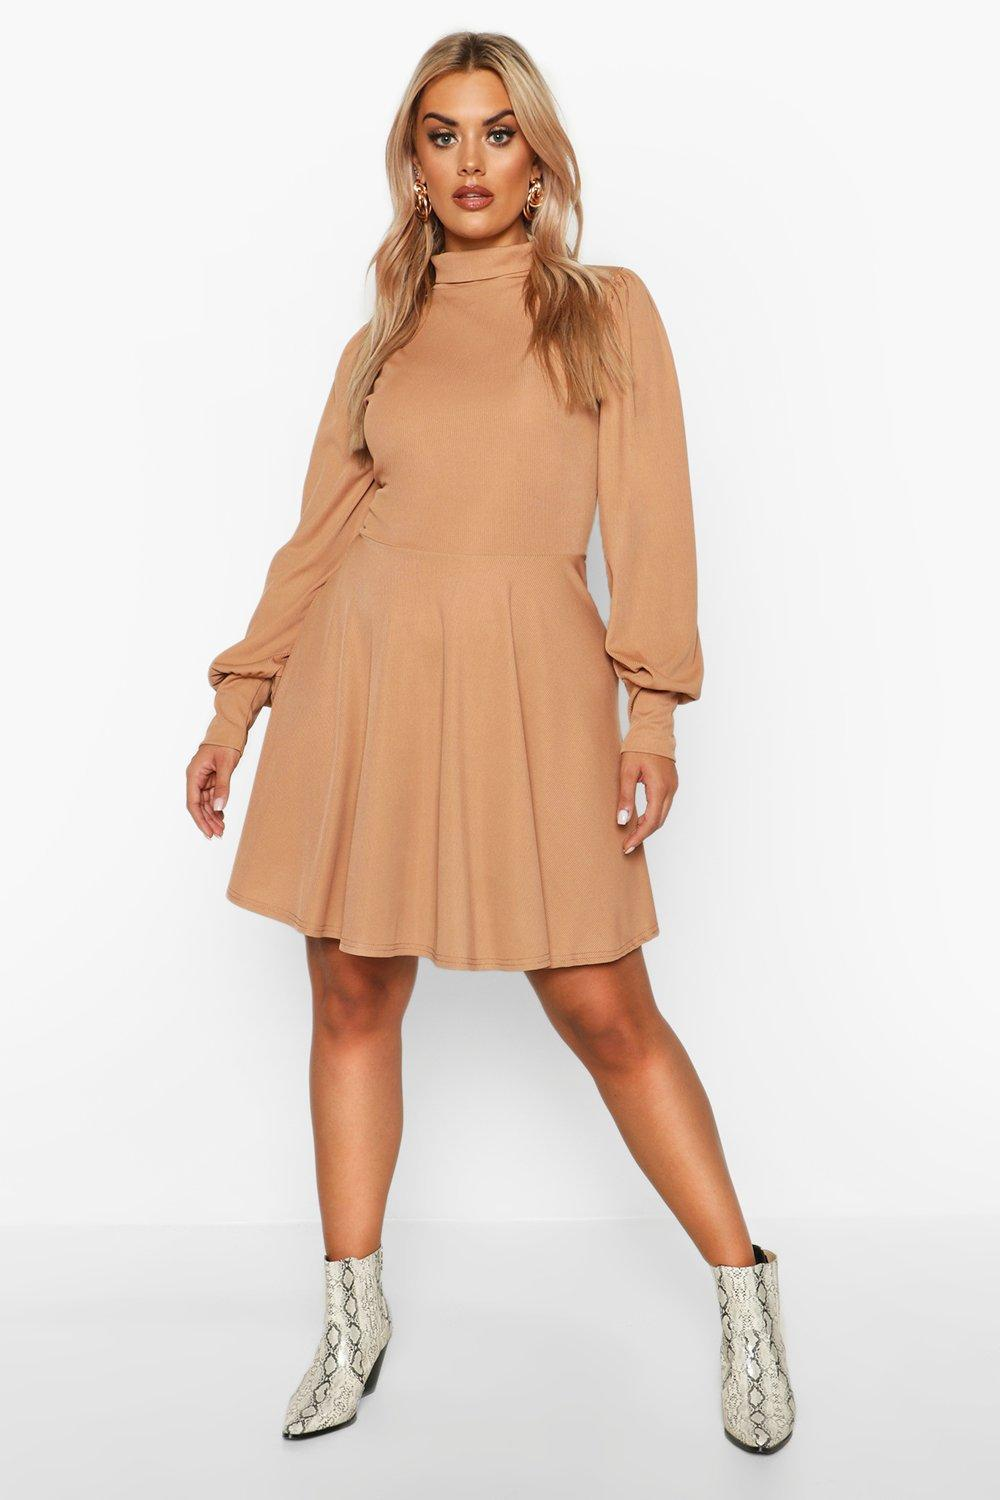 Plus Balloon Sleeve High Neck Skater Dress 17